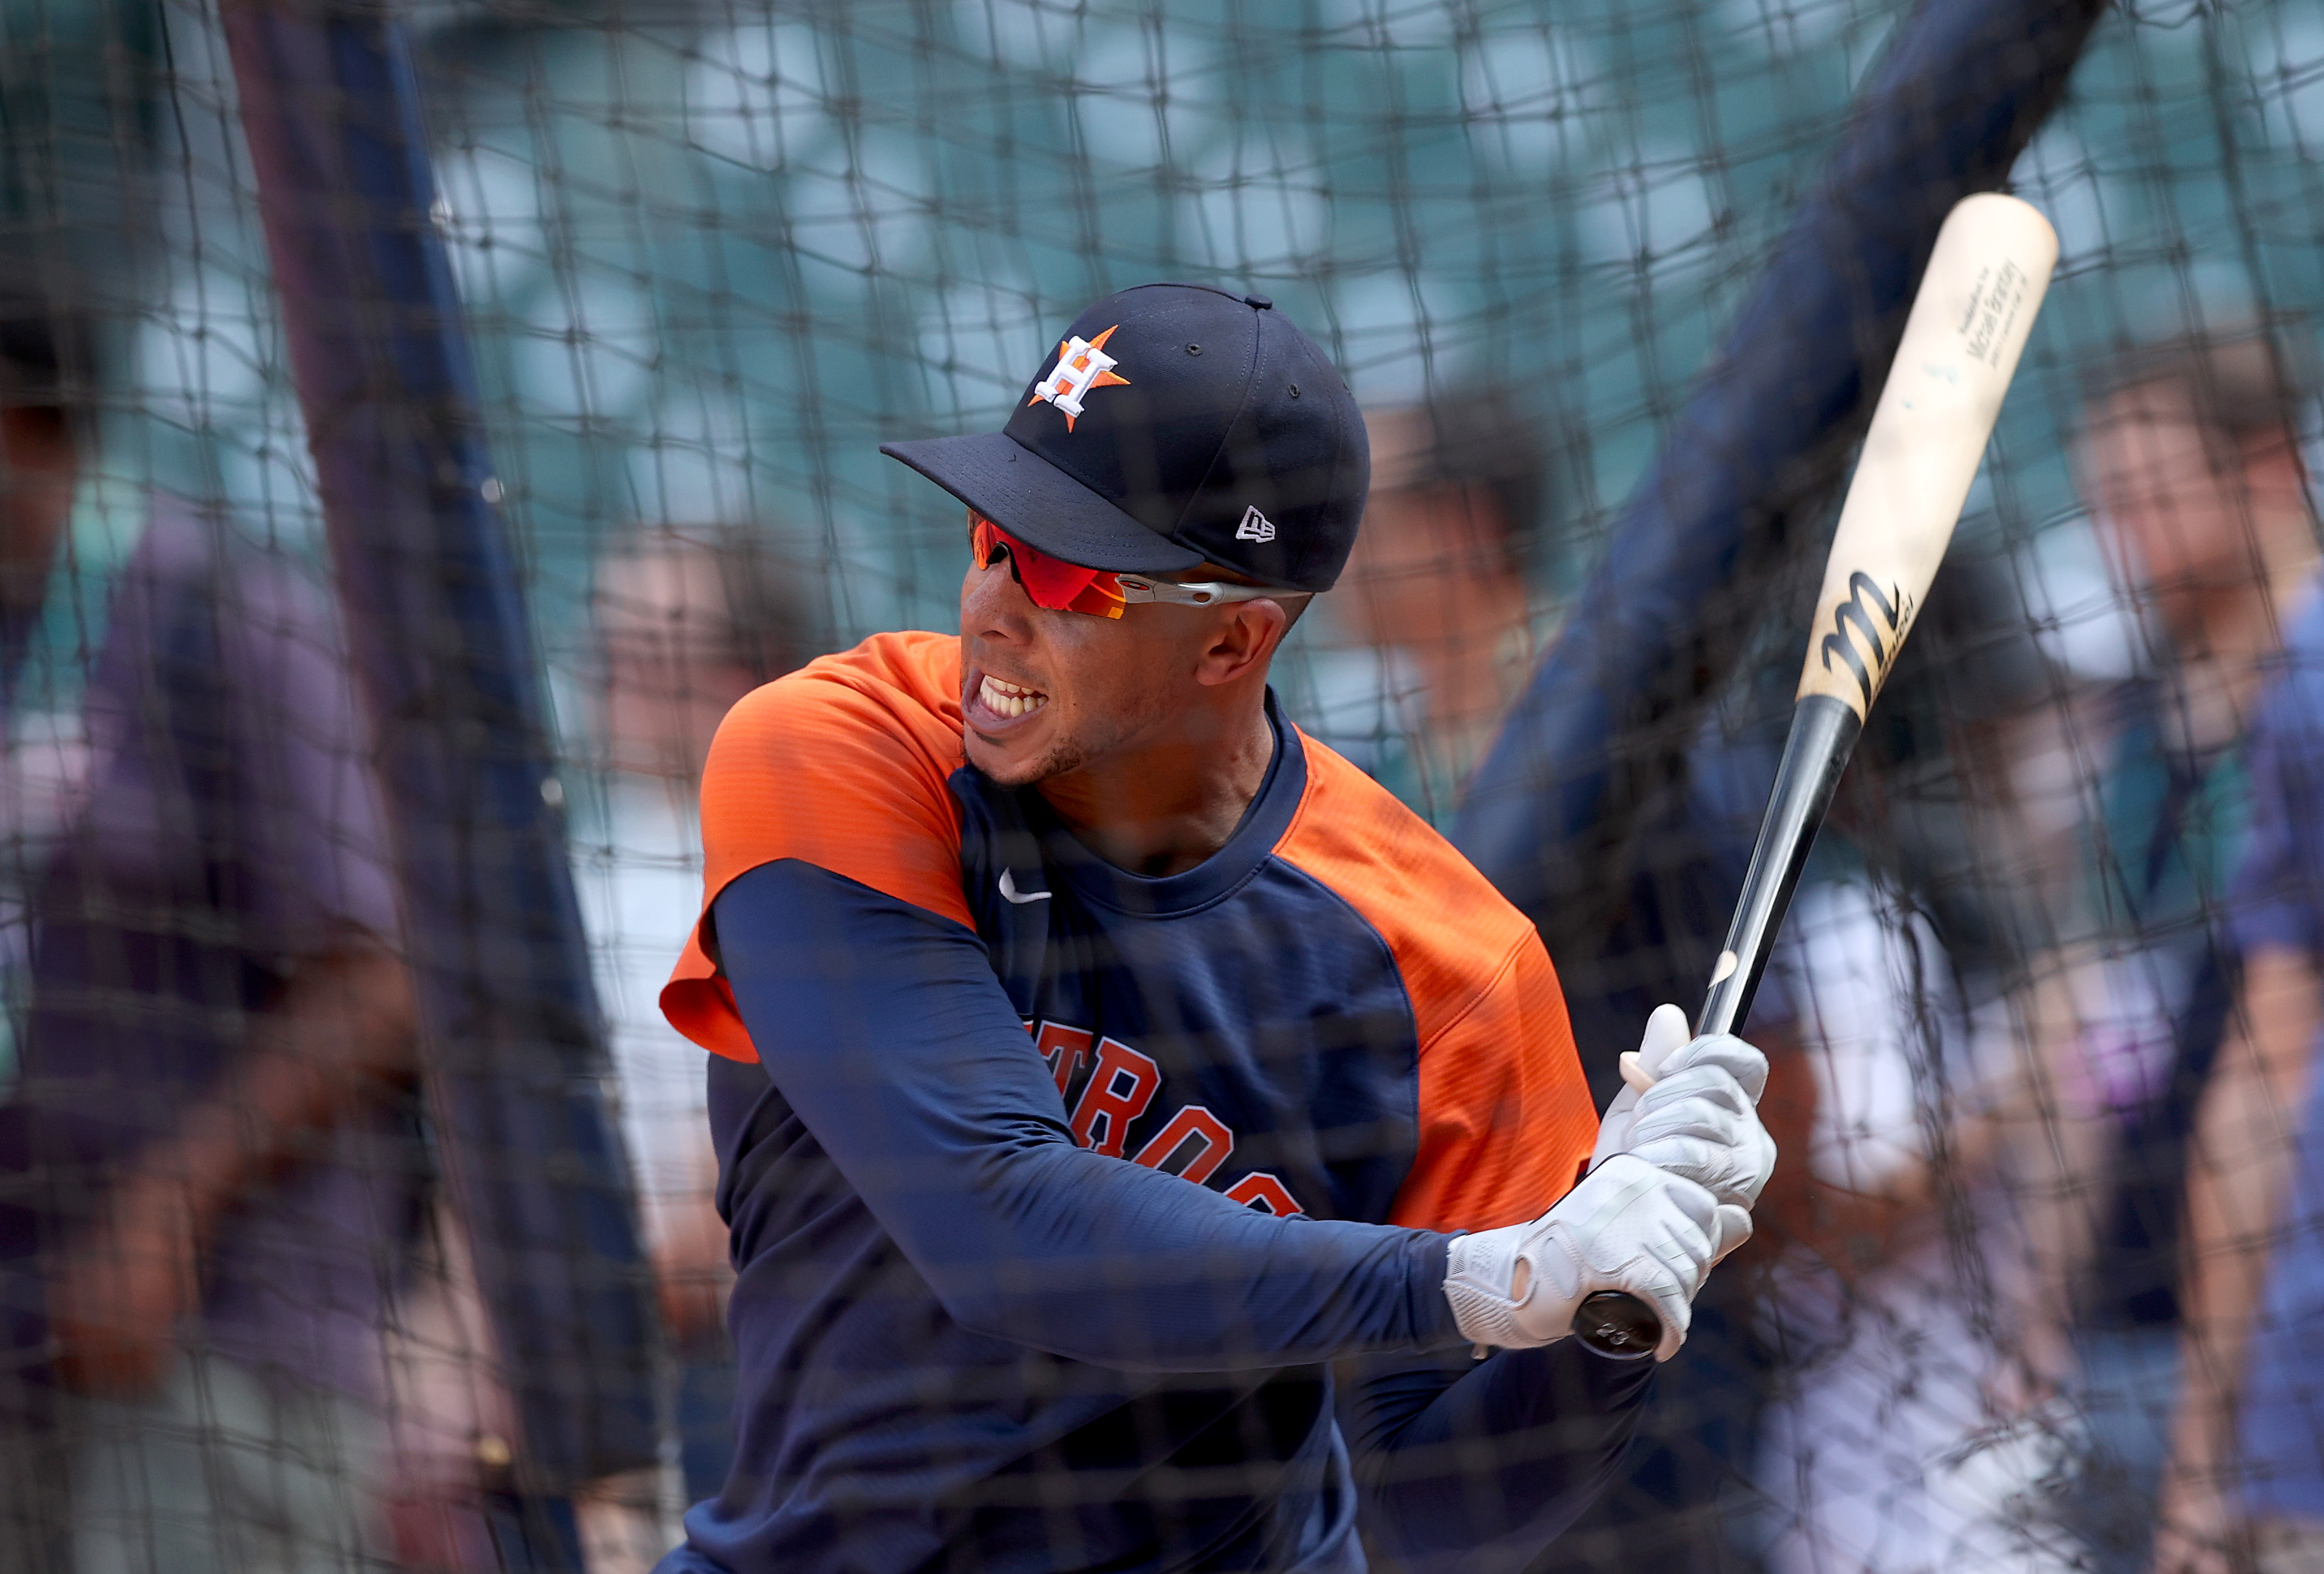 Michael Brantley #23 of the Houston Astros hits during the World Series Workout Day at Minute Maid Park on October 25, 2021 in Houston, Texas.